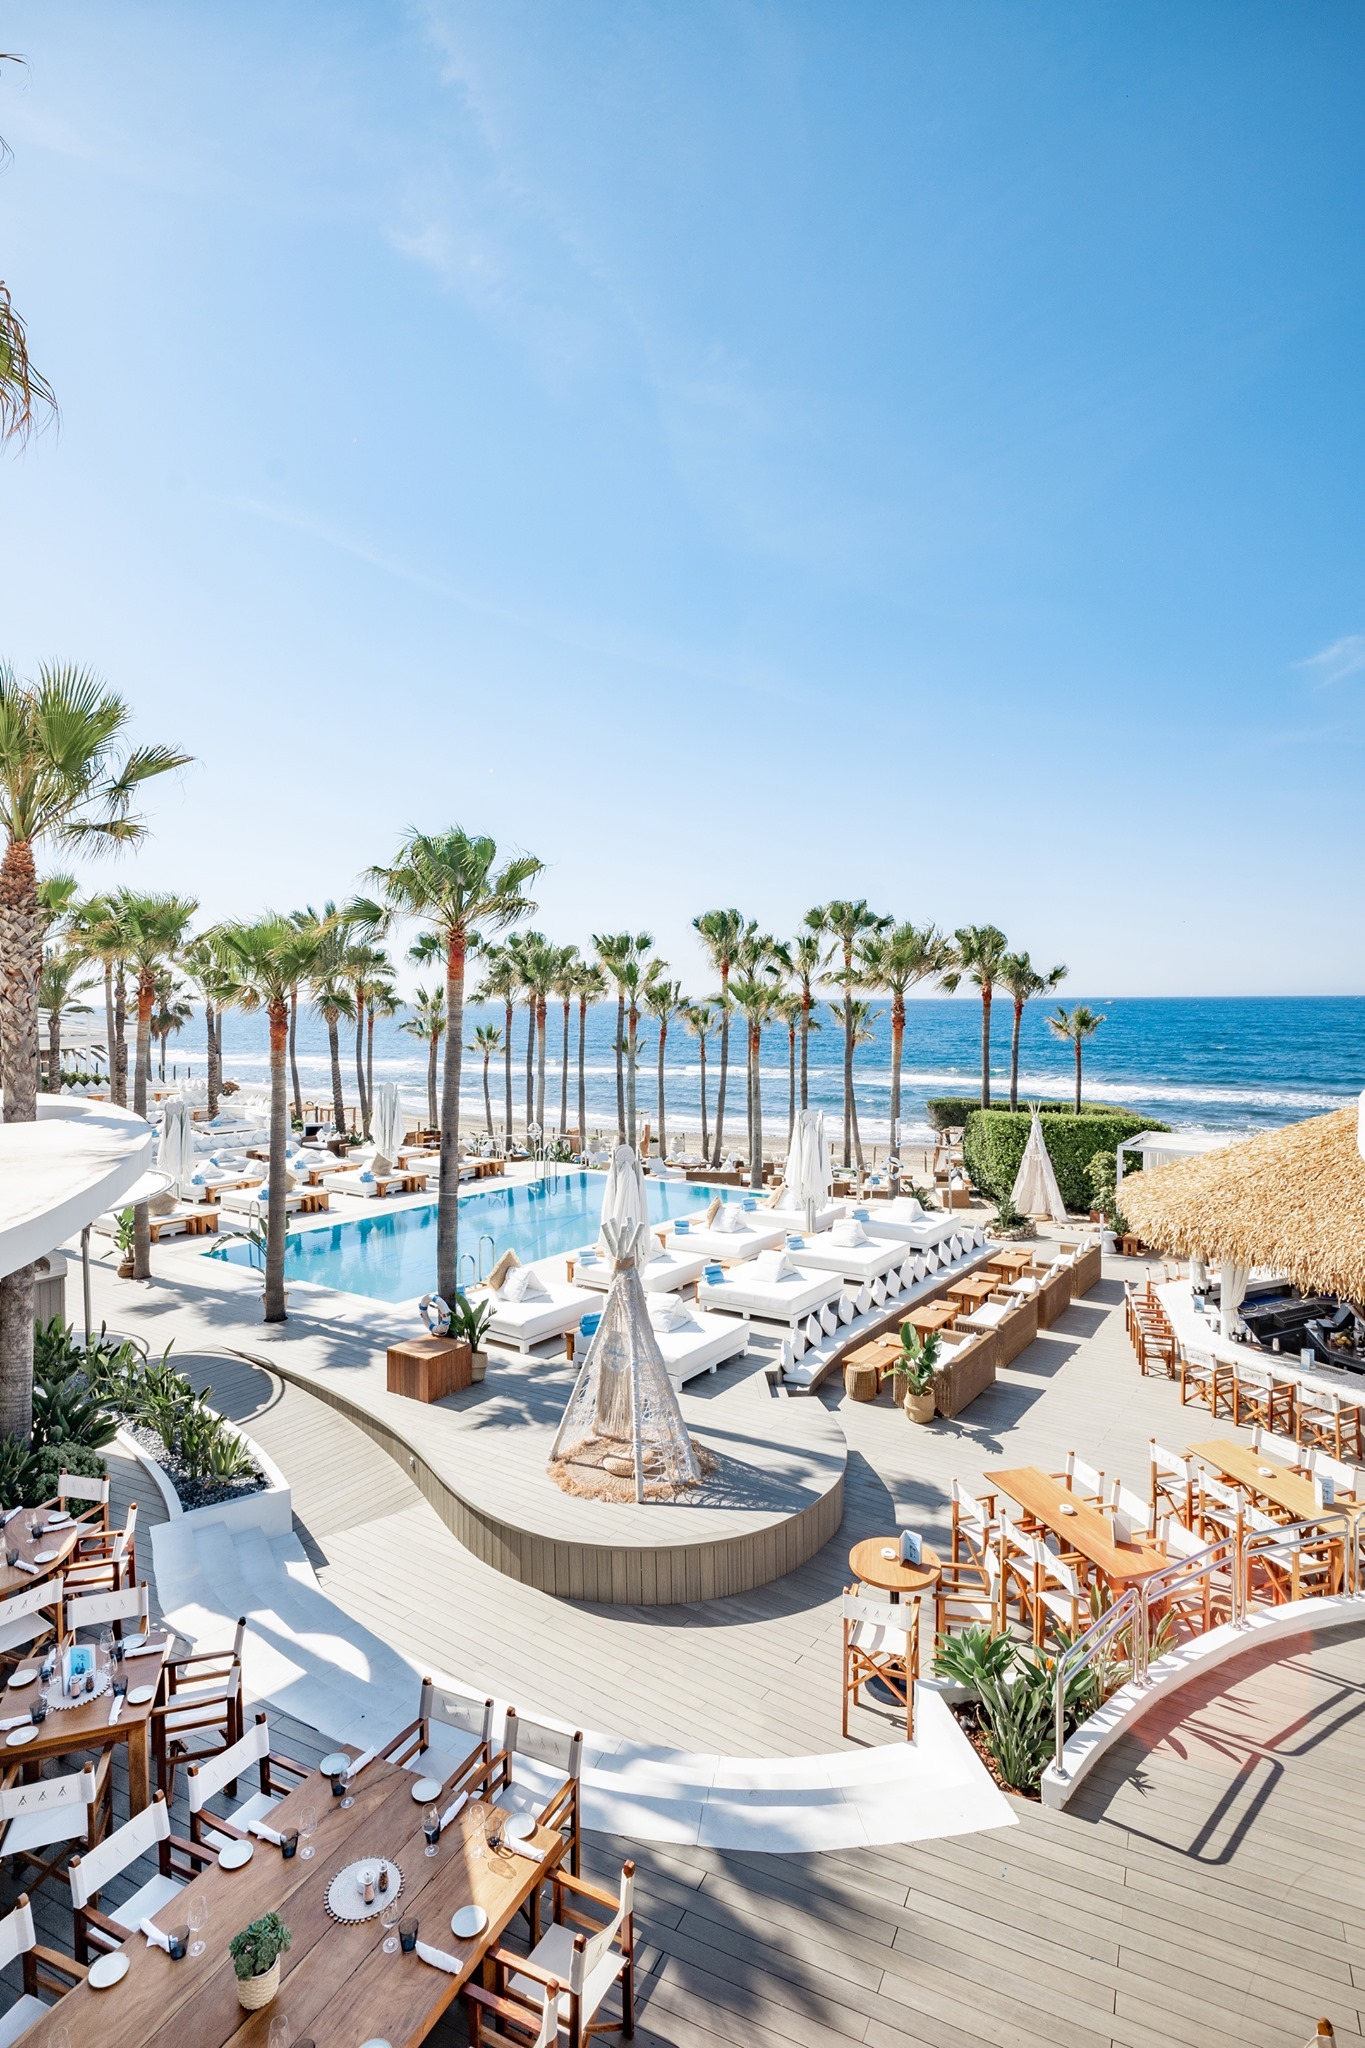 Nikki Beach prices 2020